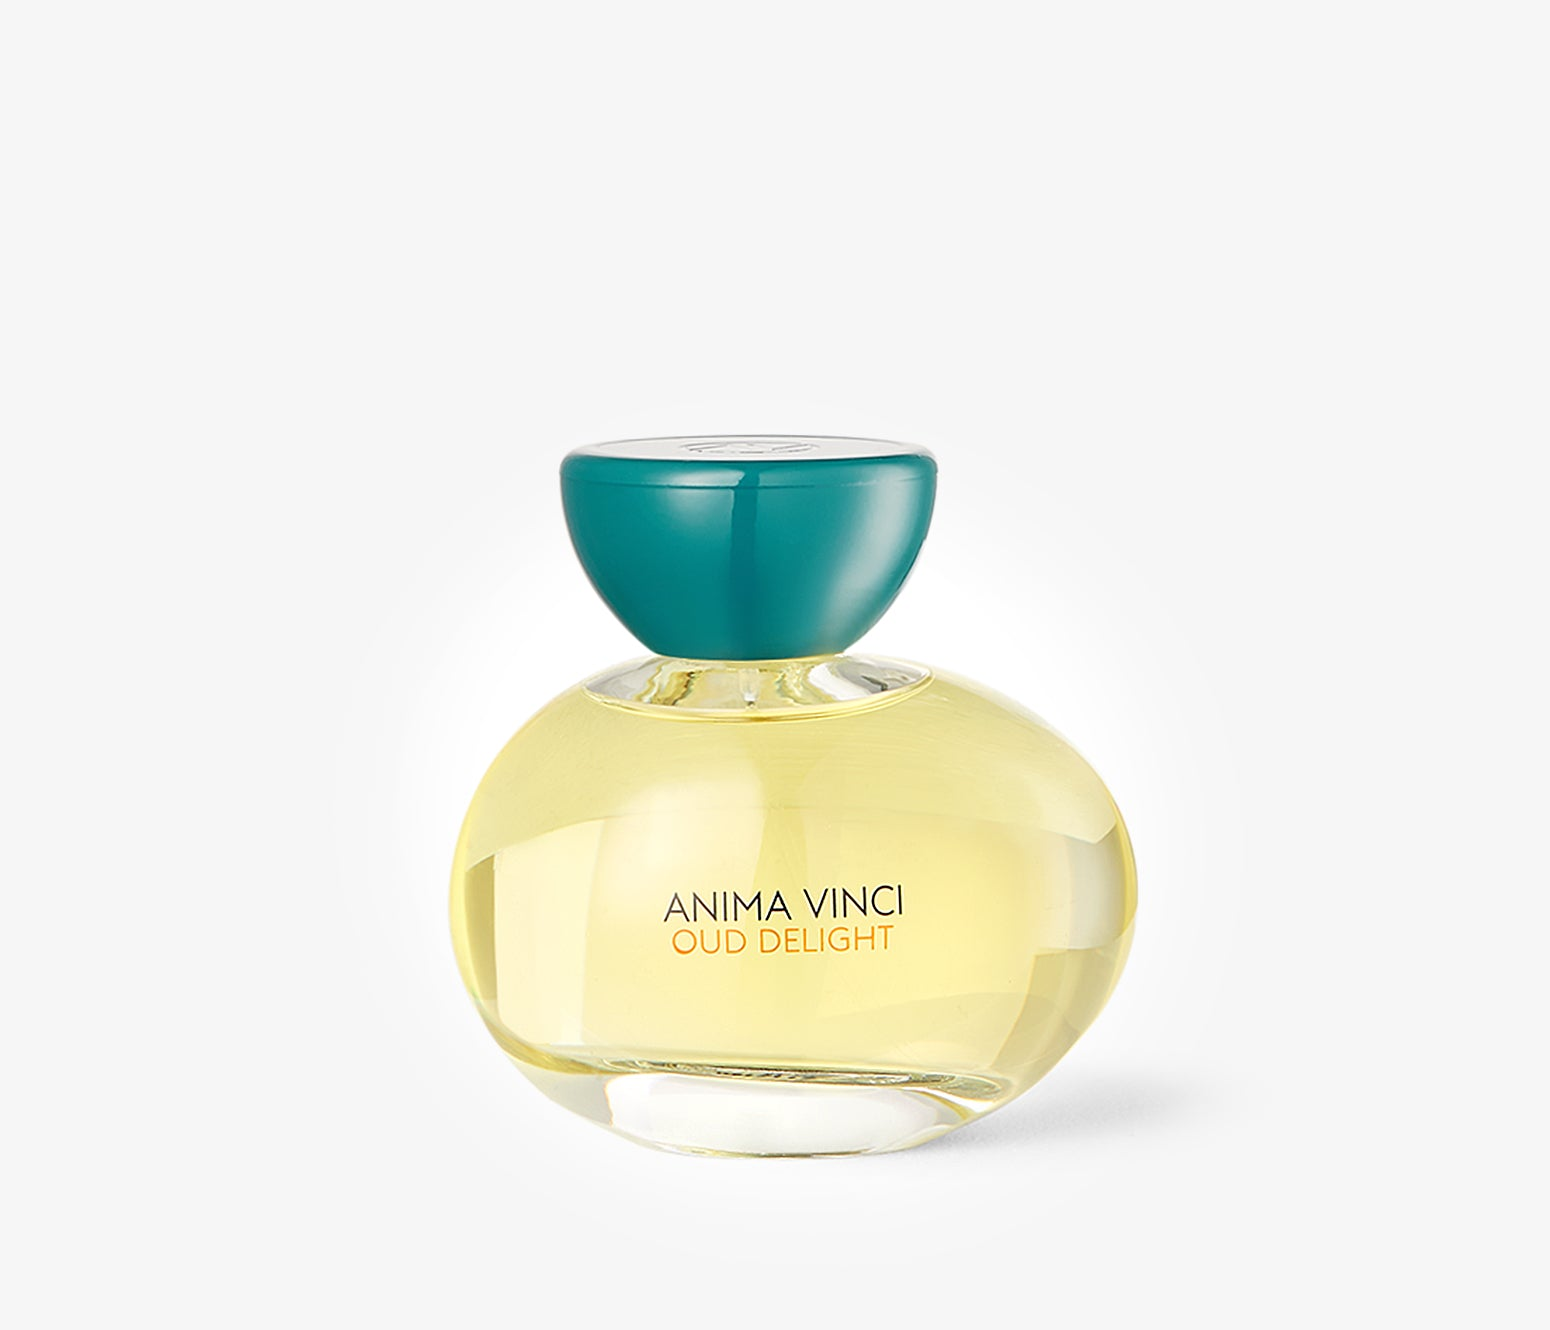 Anima Vinci - Oud Delight - 100ml - OHI001 - product image - Fragrance - Les Senteurs